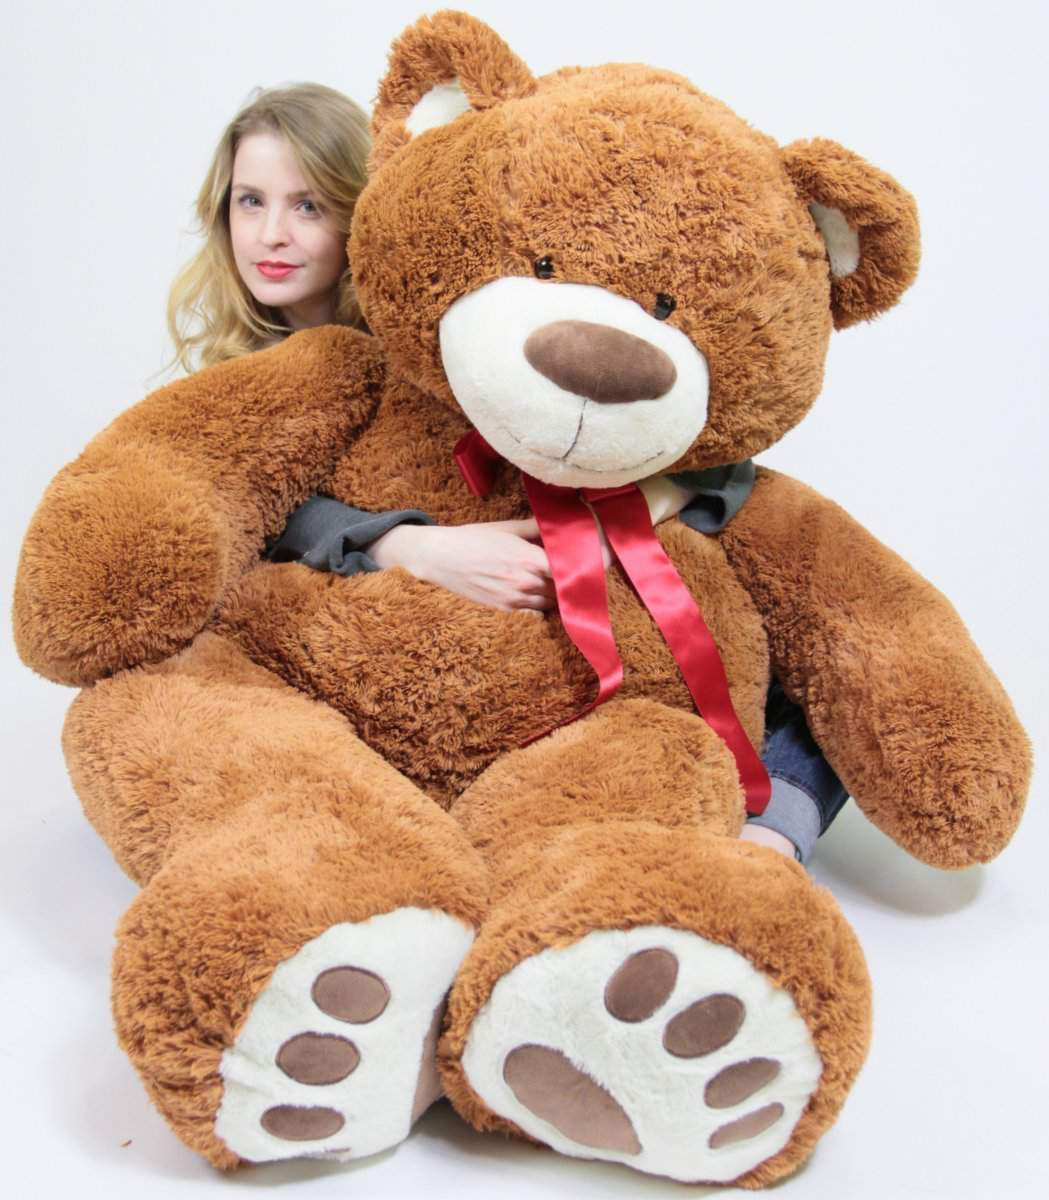 5 Foot Very Big Smiling Teddy Bear 60 Inch Soft Brown Giant Stuffed Animal with Bigfoot Paws by BigPlush